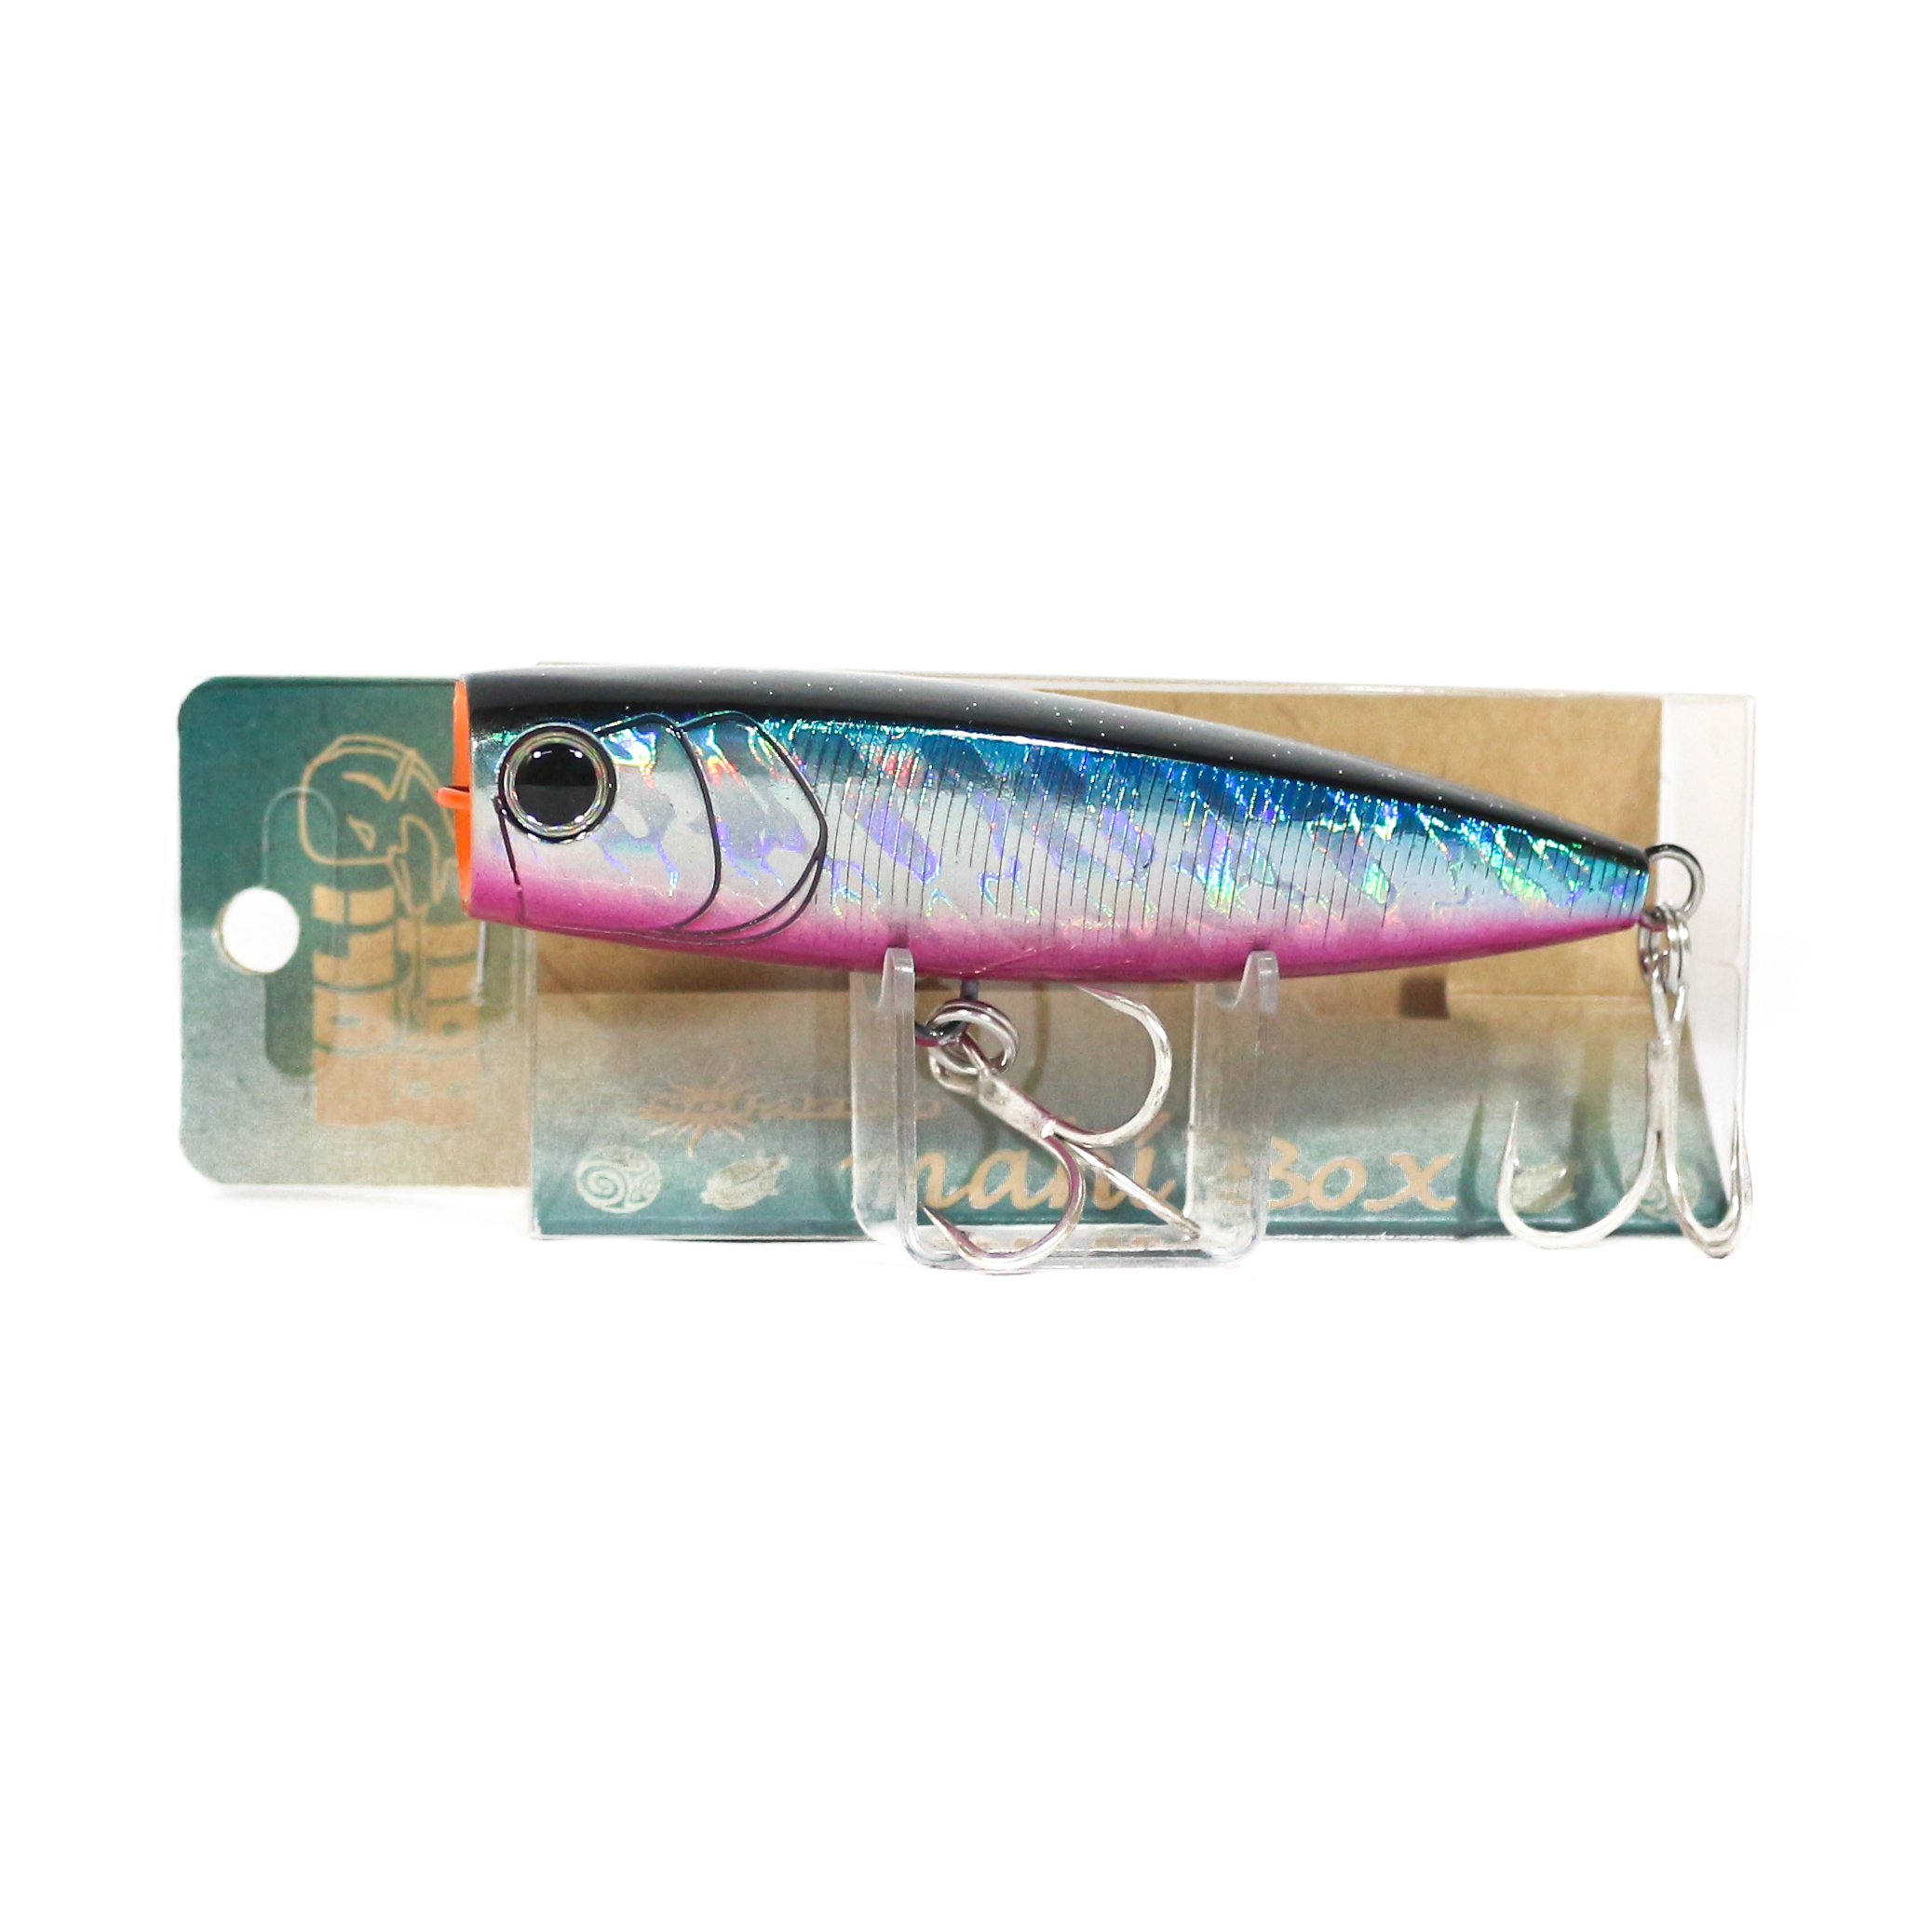 Mangrove Studio Mahi Box Popper 100 mm 28 grams Floating Lure MH-1P (1485)